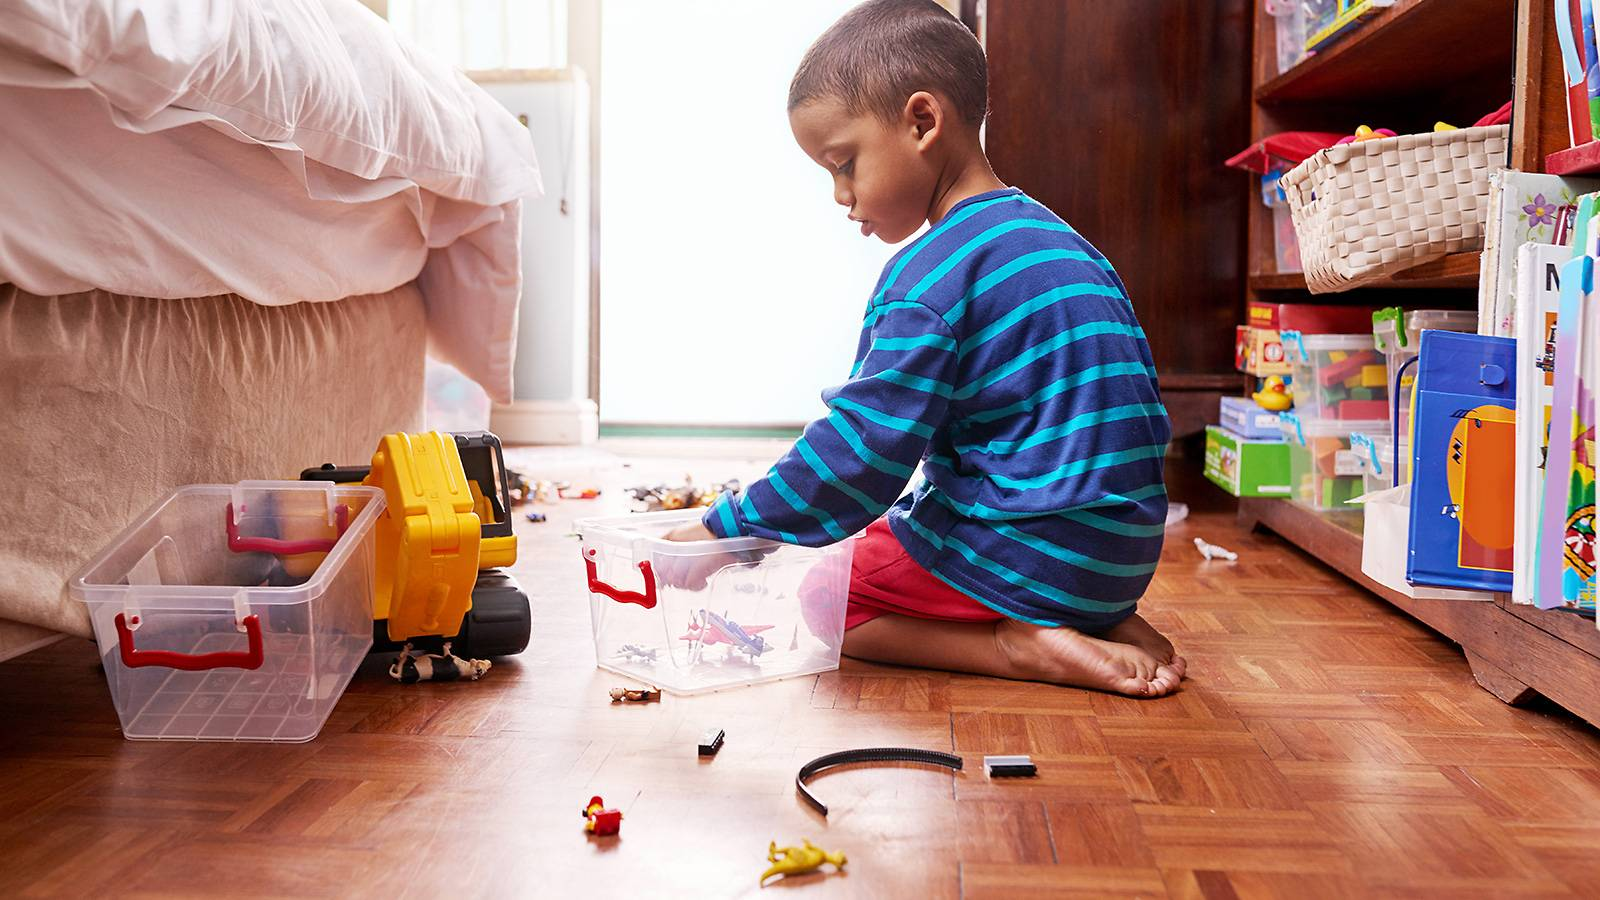 Kids-10-tips-to-get-junior-to-clean-up-after-themselves-2